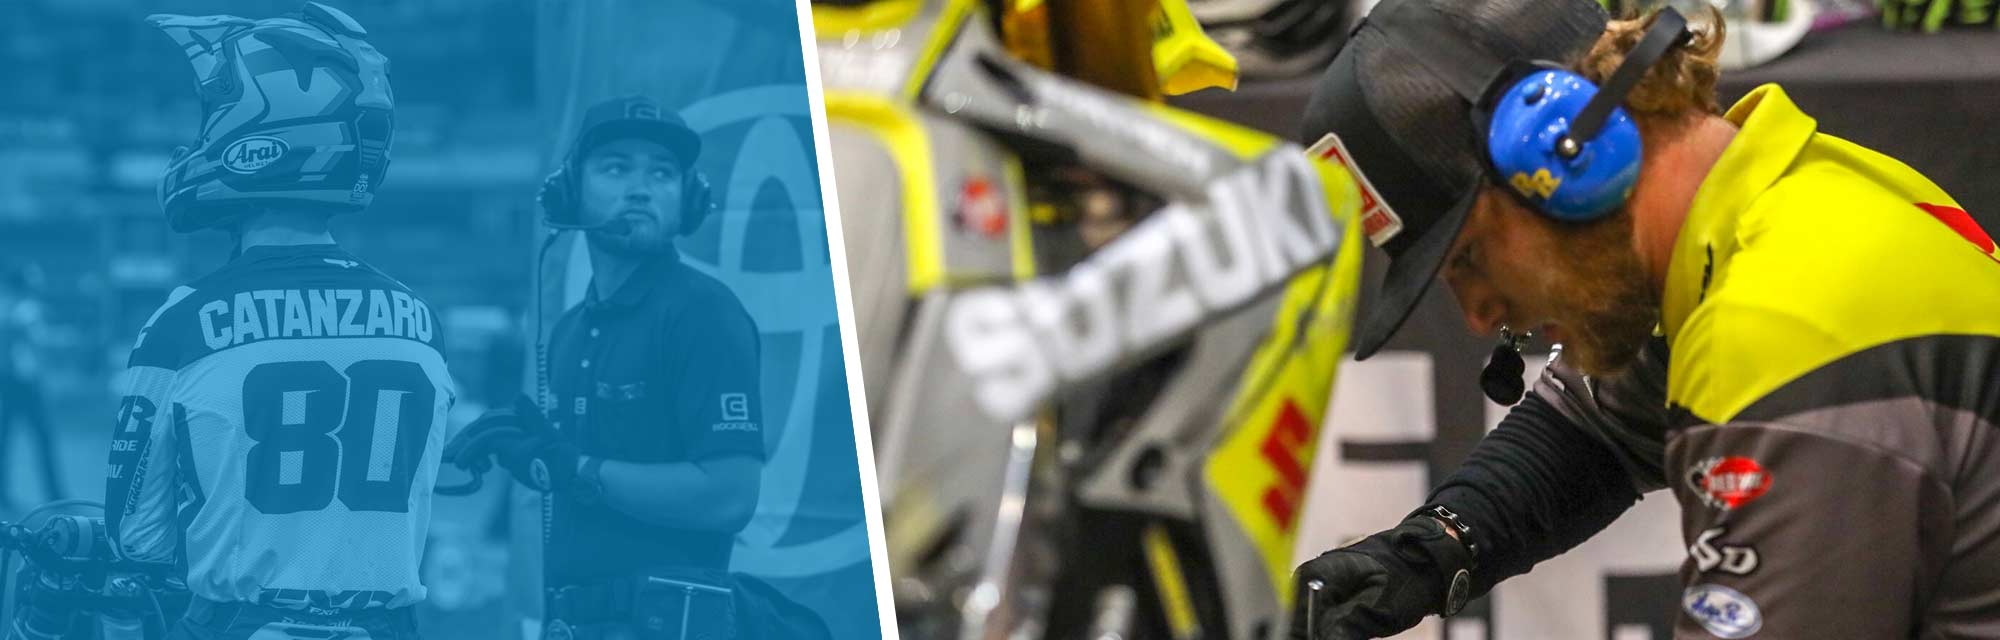 Derrick Sorensen: From MMI Student to the Suzuki Race Team